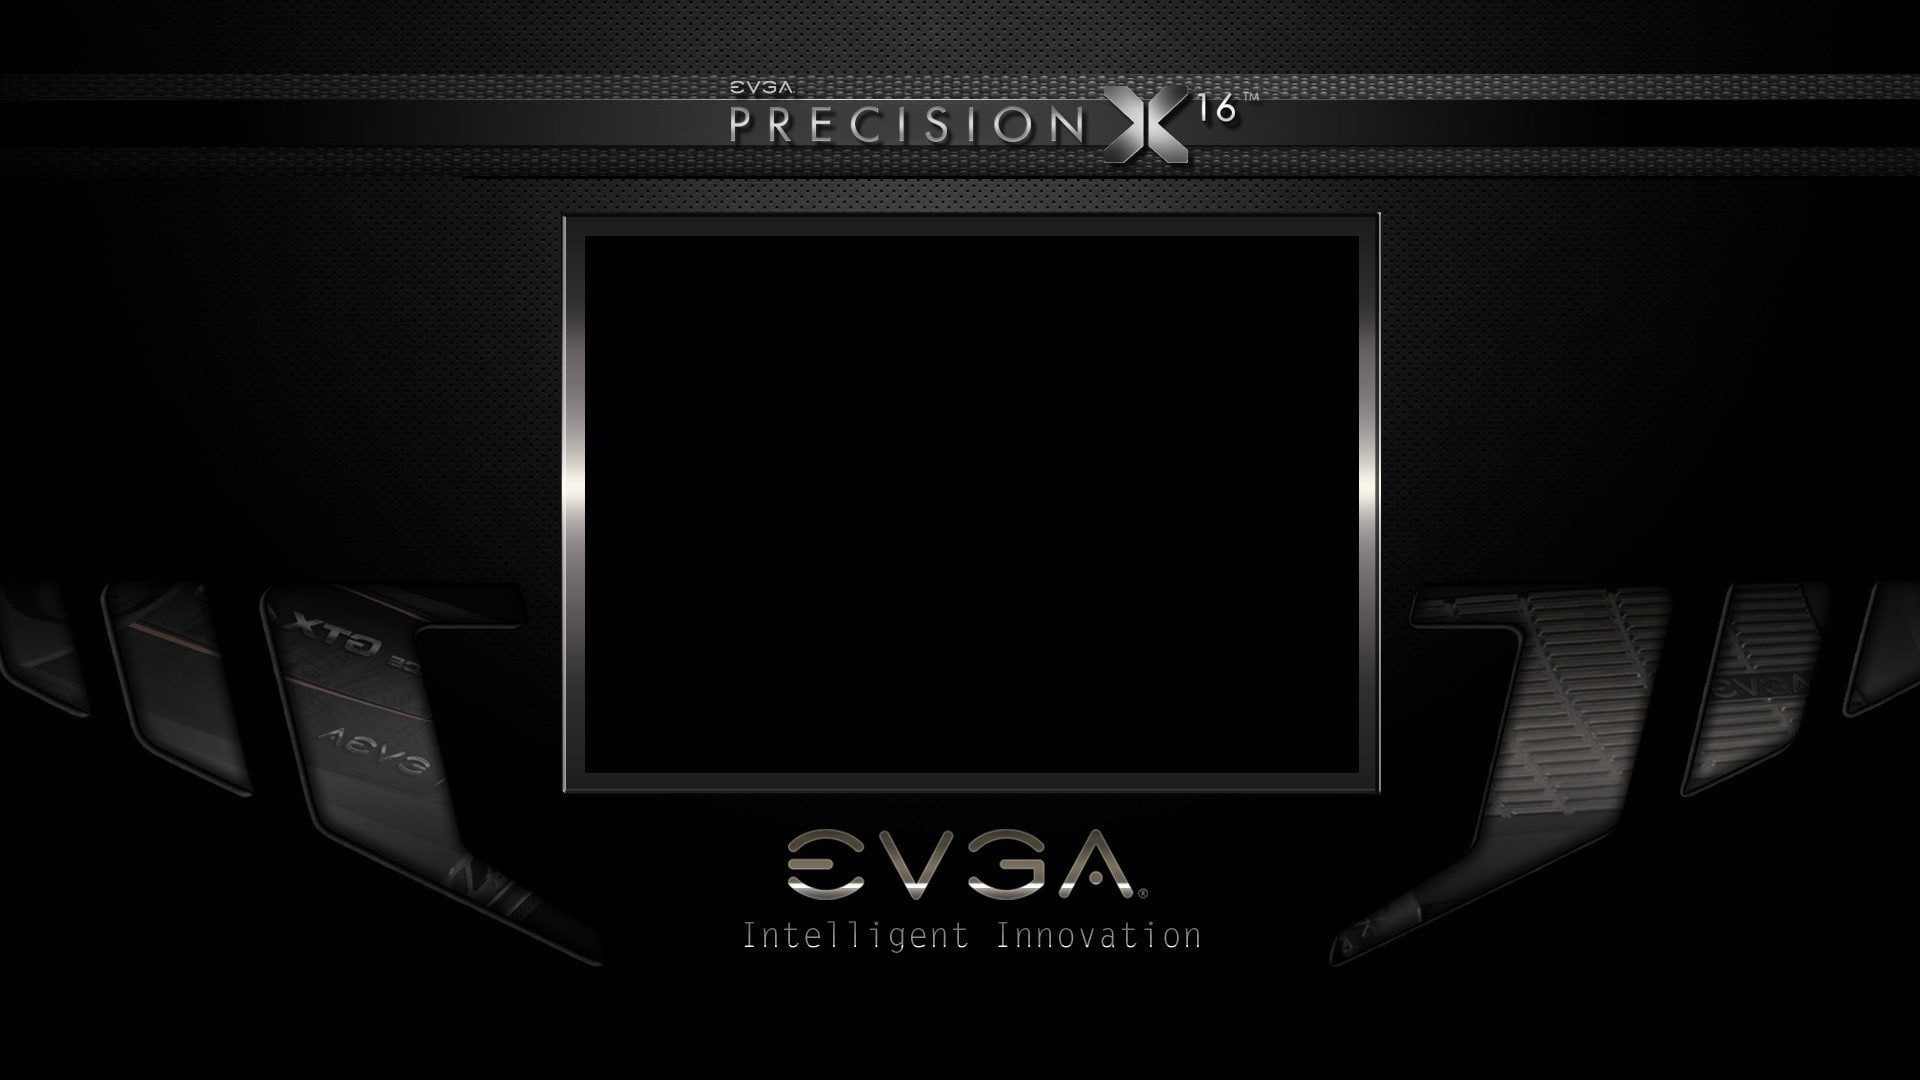 1920x1080  HD wallpaper: EVGA EVGA Precision | Wallpaper Flare, #5 of 92